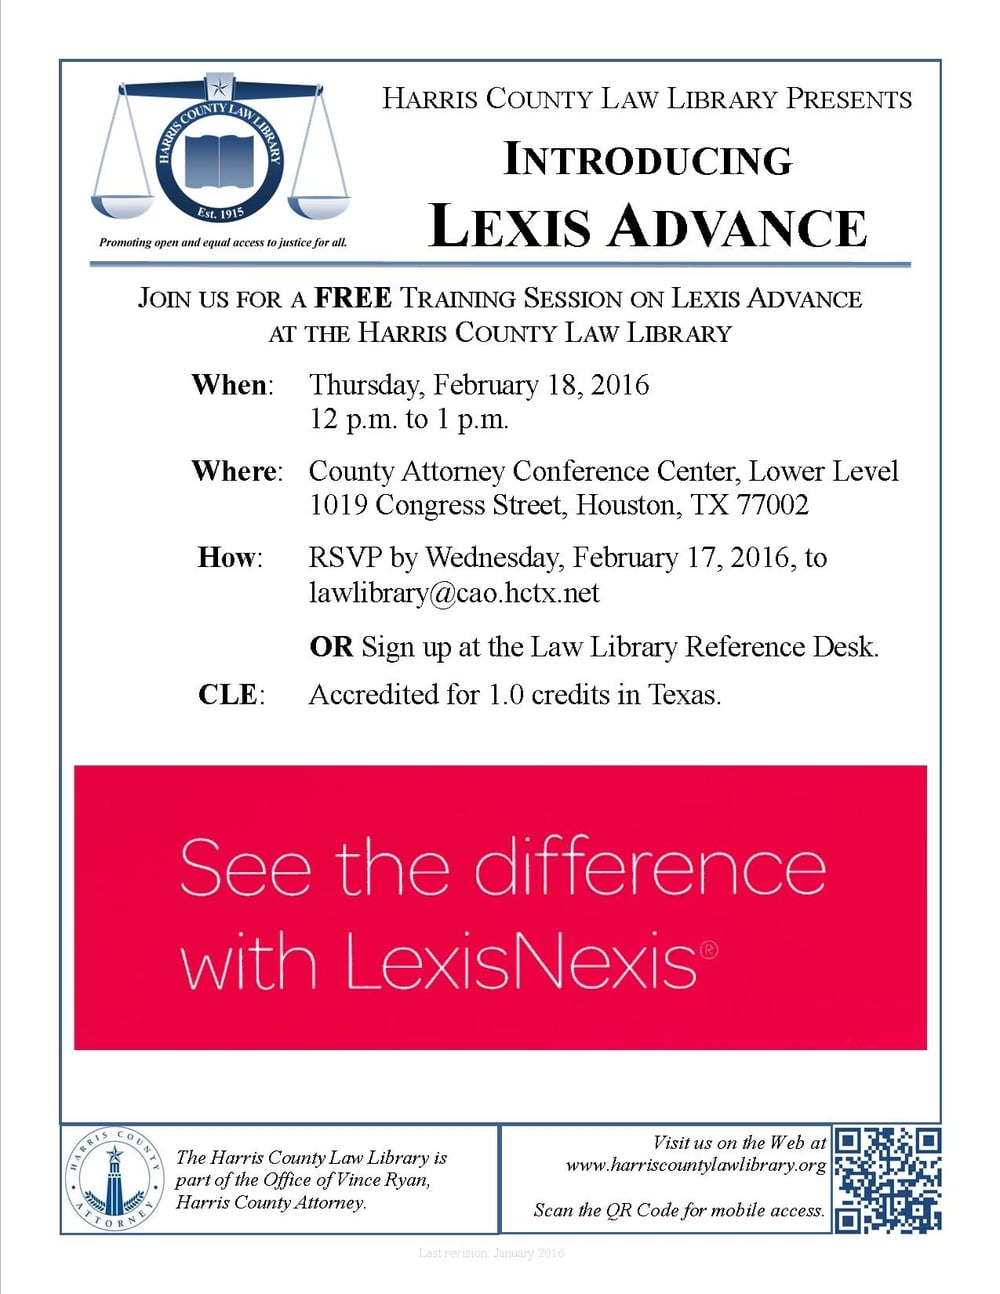 Link to PDF flyer for Lexis Advance training session on February 18.